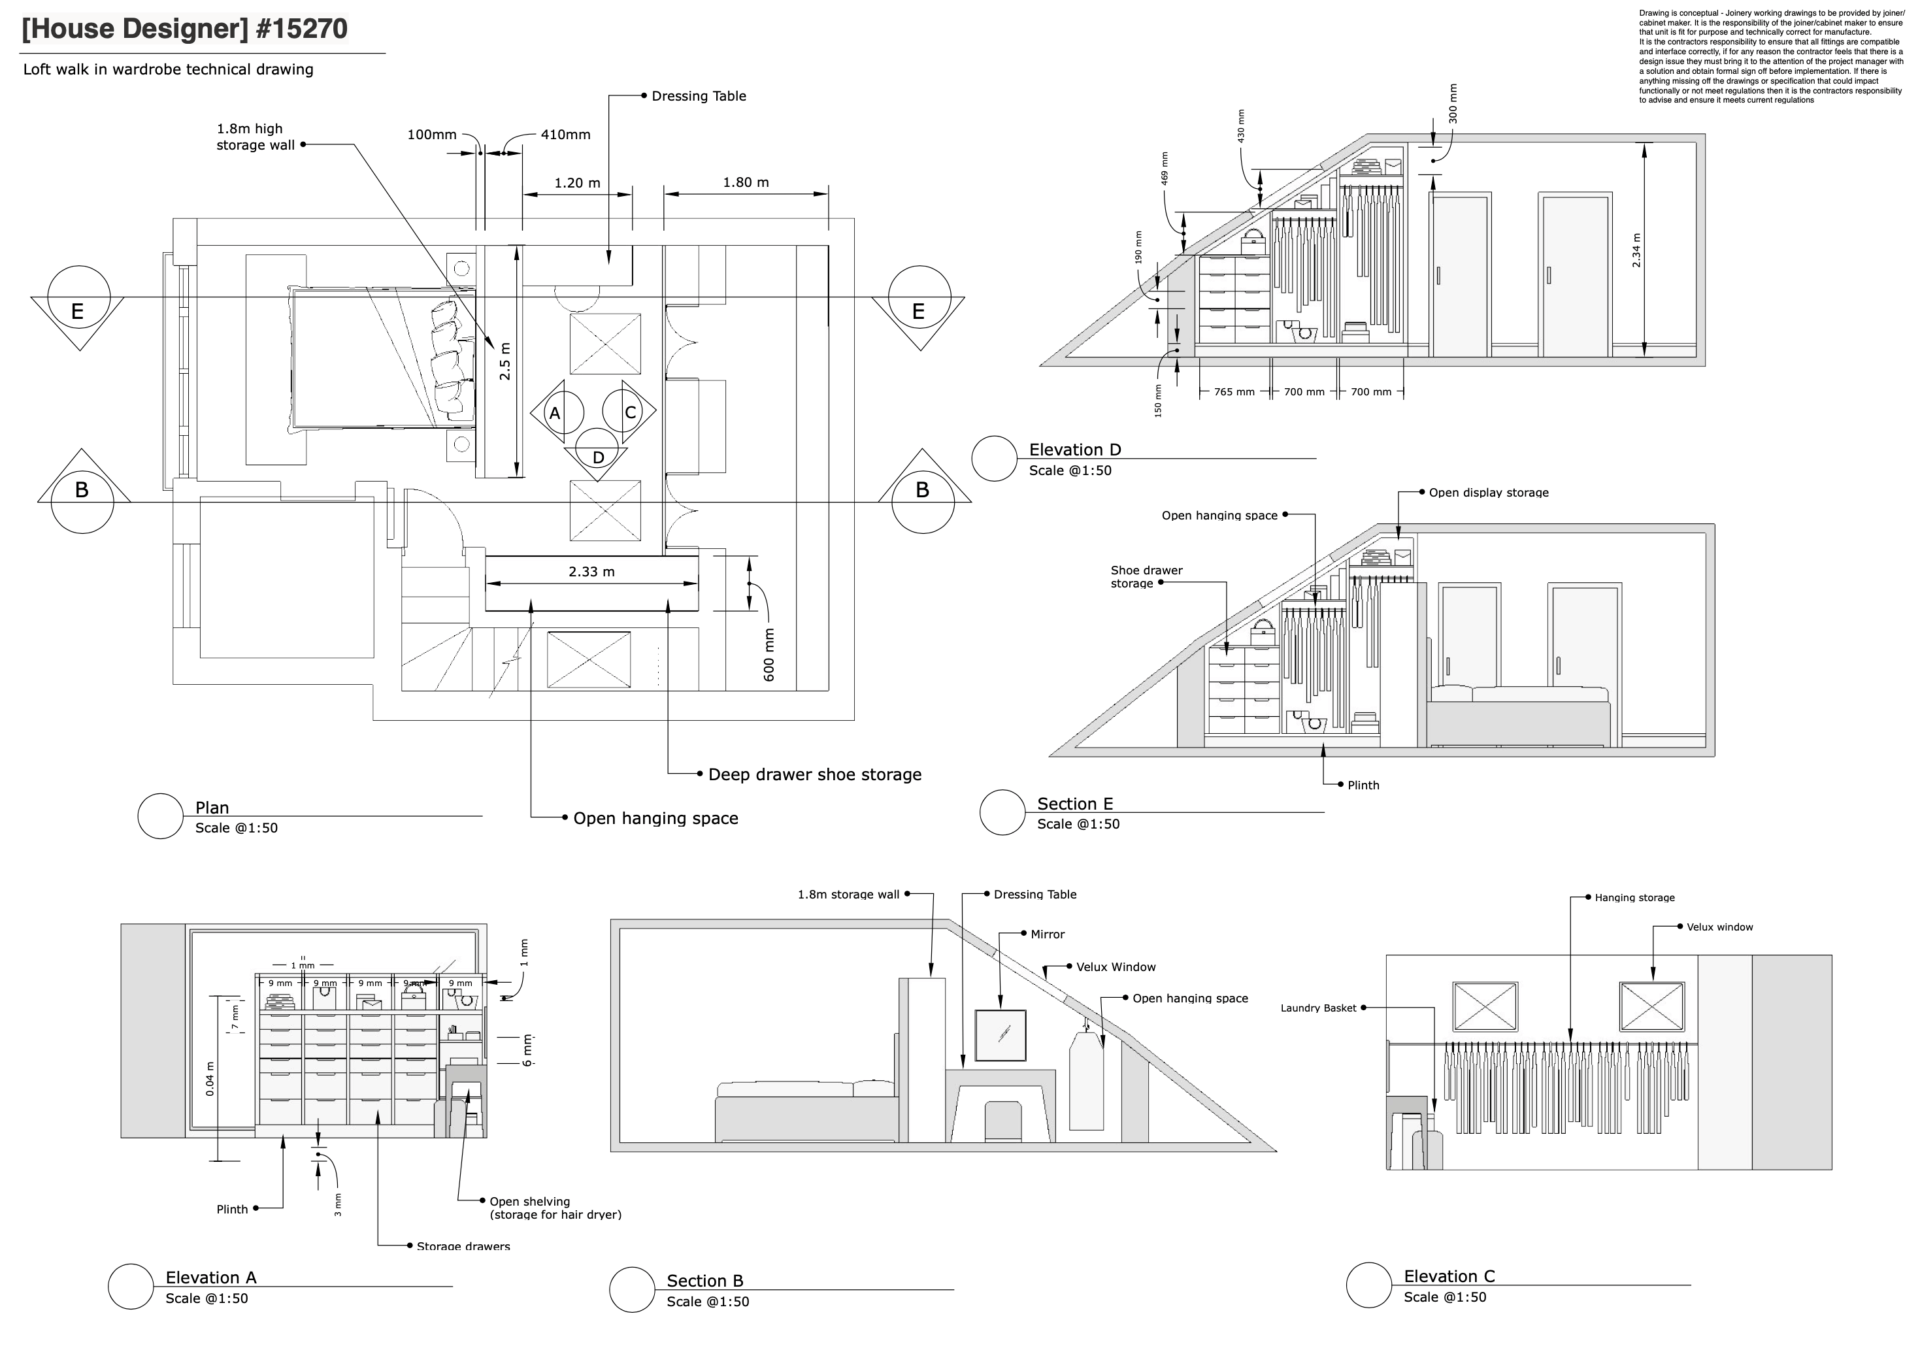 House-Designer-Technical-Drawing